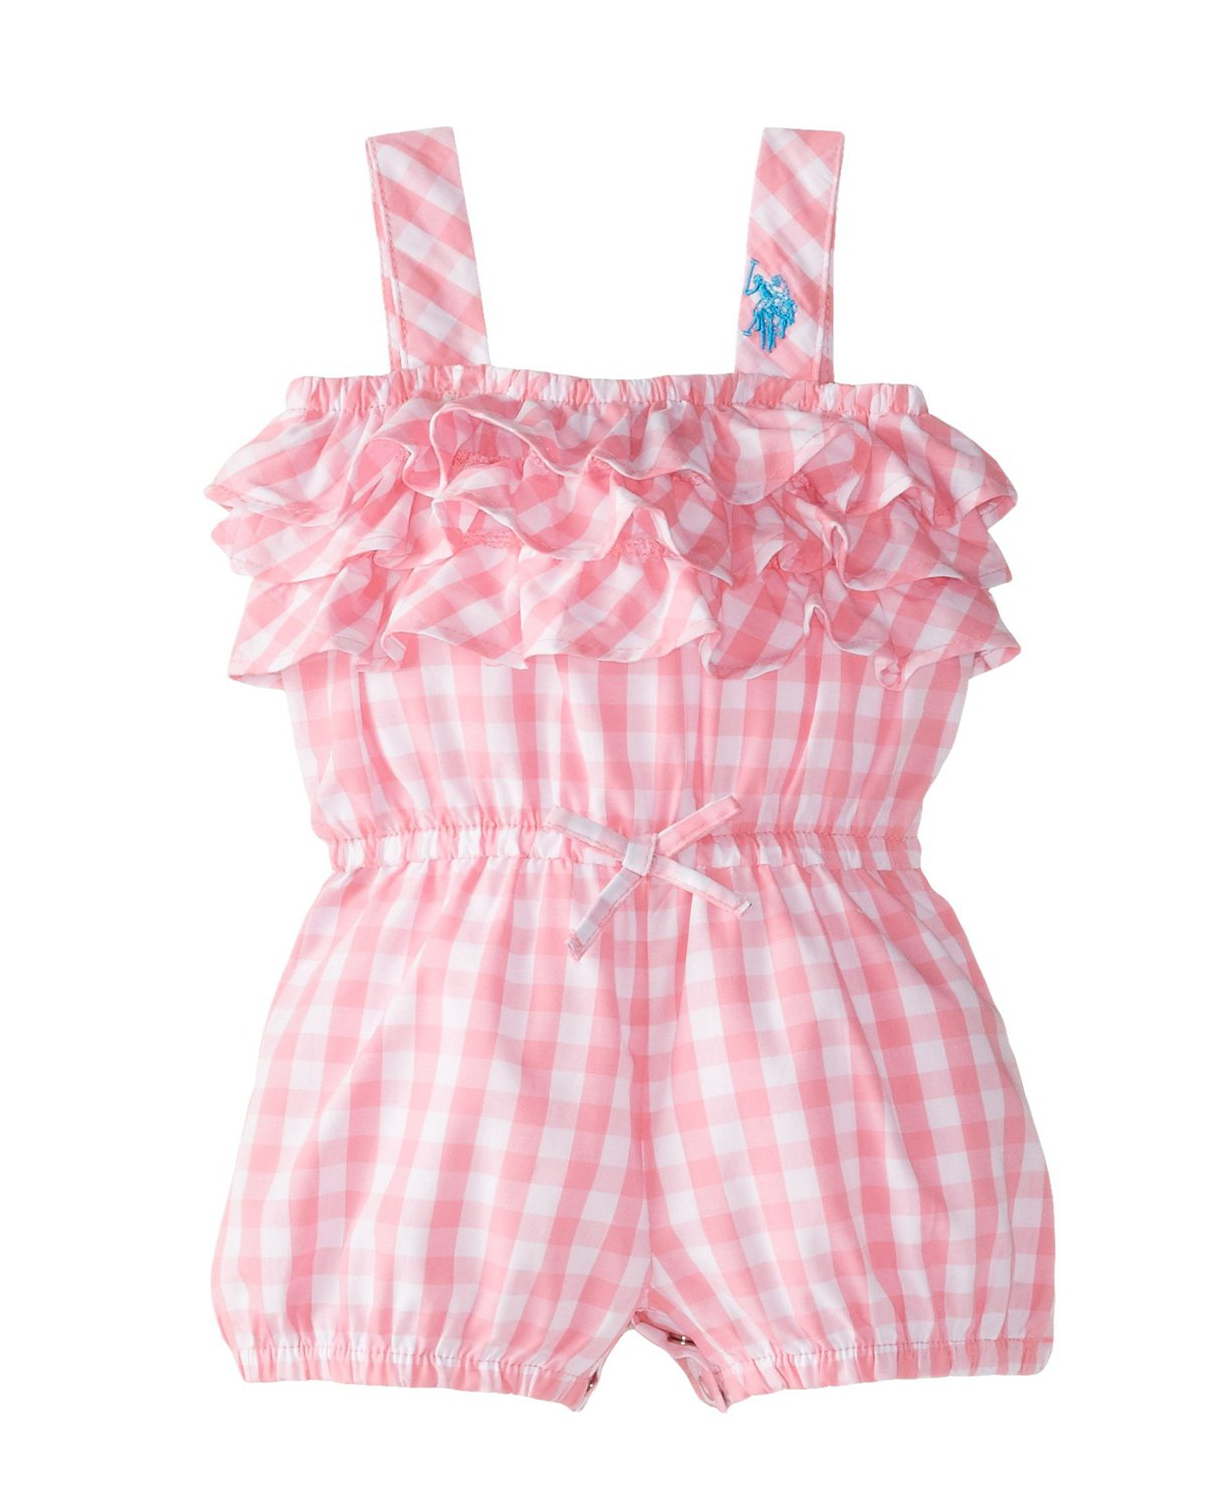 d15e8af0c981 New U.S. Polo Assn. Baby Girls  Woven Tiered Ruffle Romper OutFit Toddler  Girl Rompers